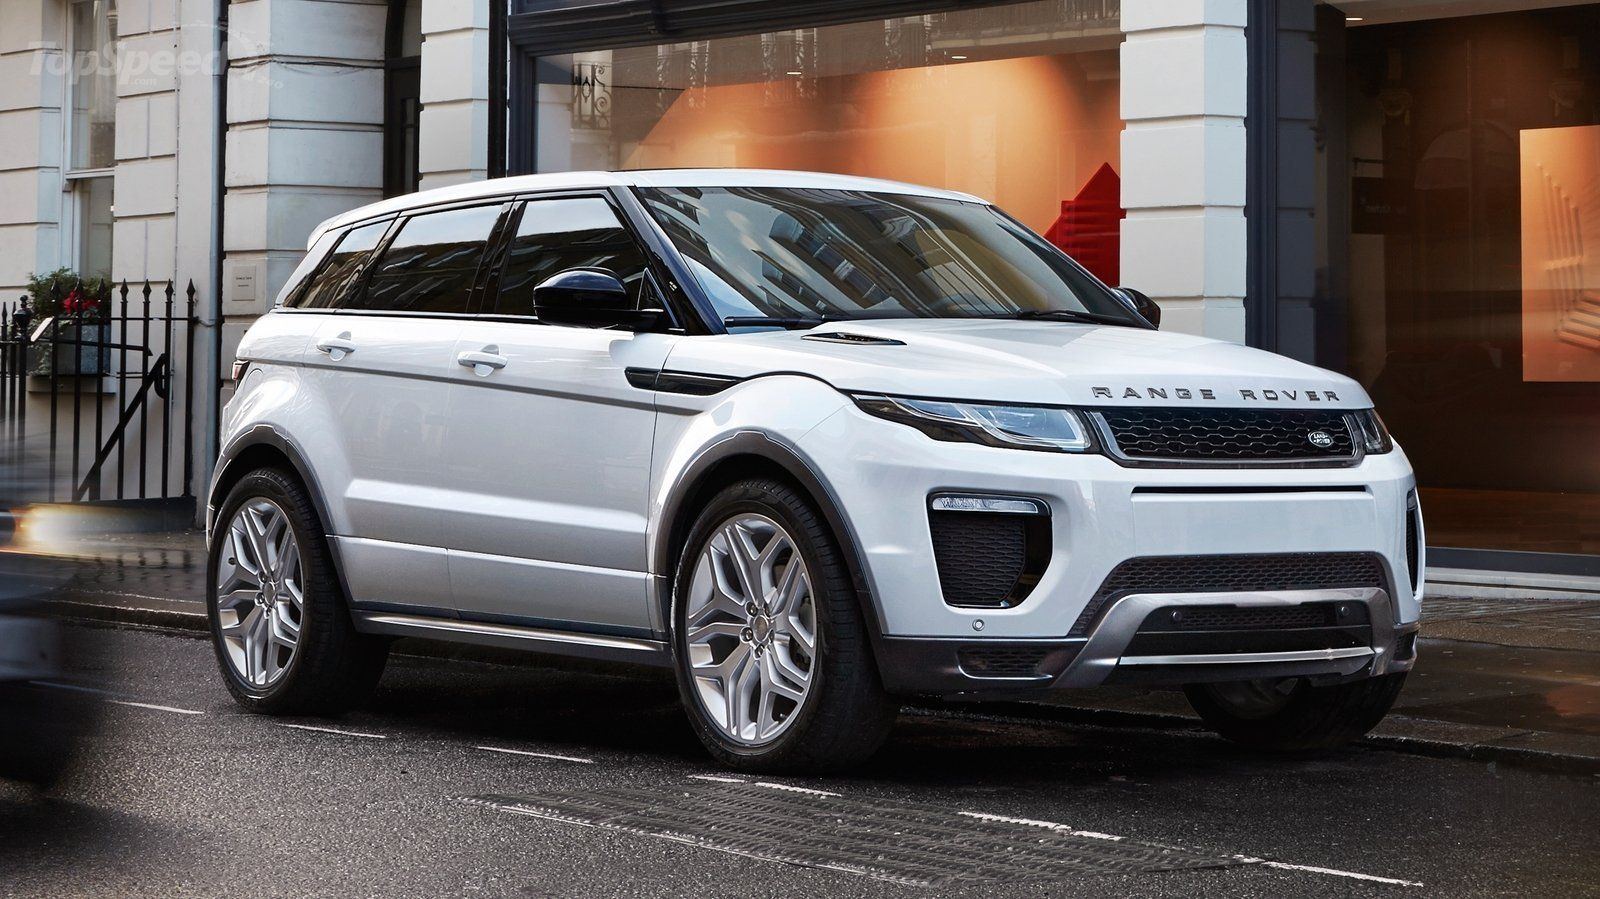 Best 25 land rover sport ideas on pinterest range rover near me black cars and range rover sport